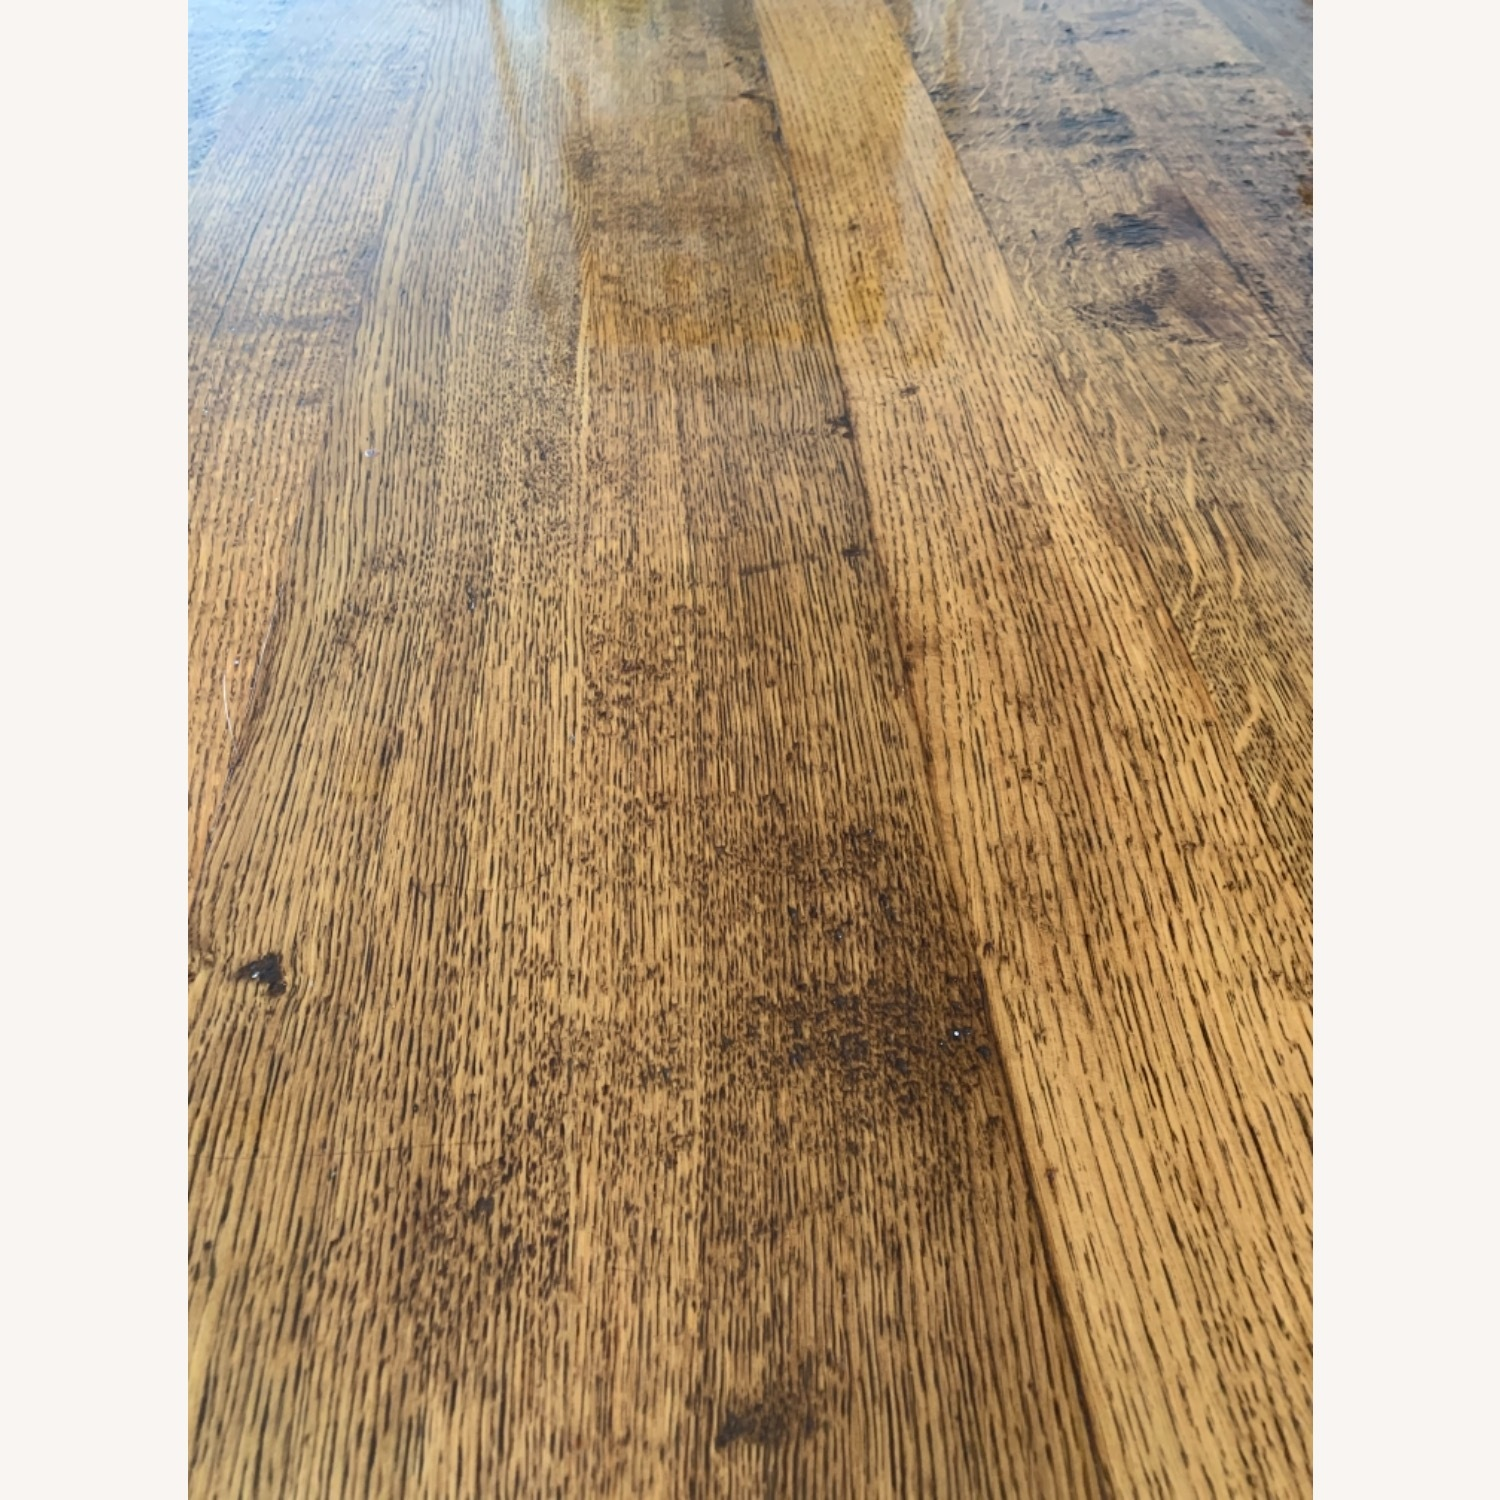 Imported French Rustic Dining Table - image-2